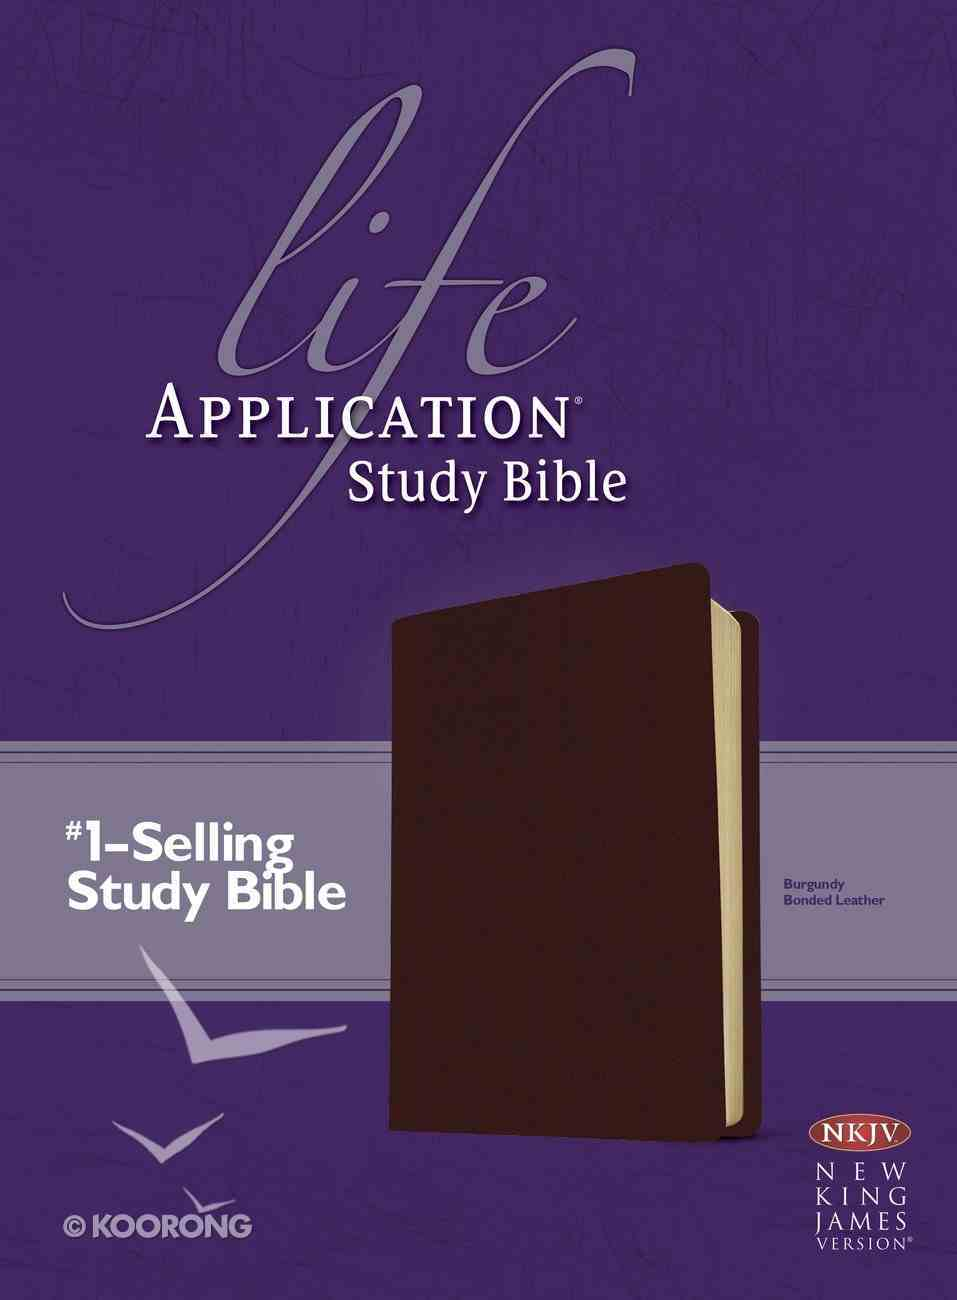 NKJV Life Application Study Bible 2nd Edition Burgundy (Red Letter Edition) Bonded Leather